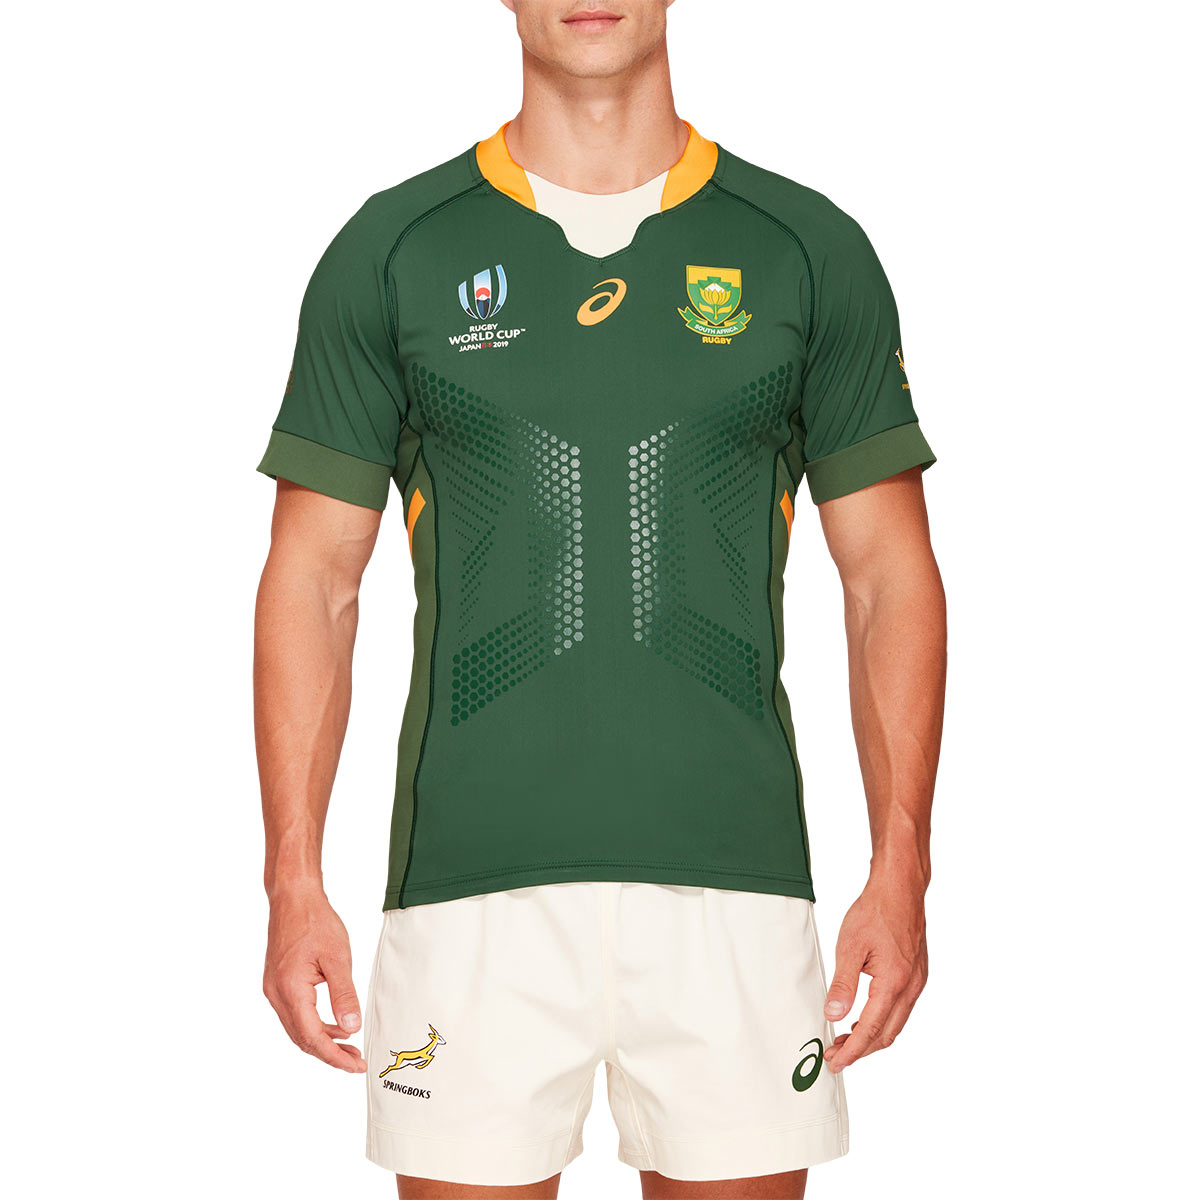 09b8e618f52 Rugby World Cup 2019 South Africa Gameday Home Rugby Shirt S/S - Model